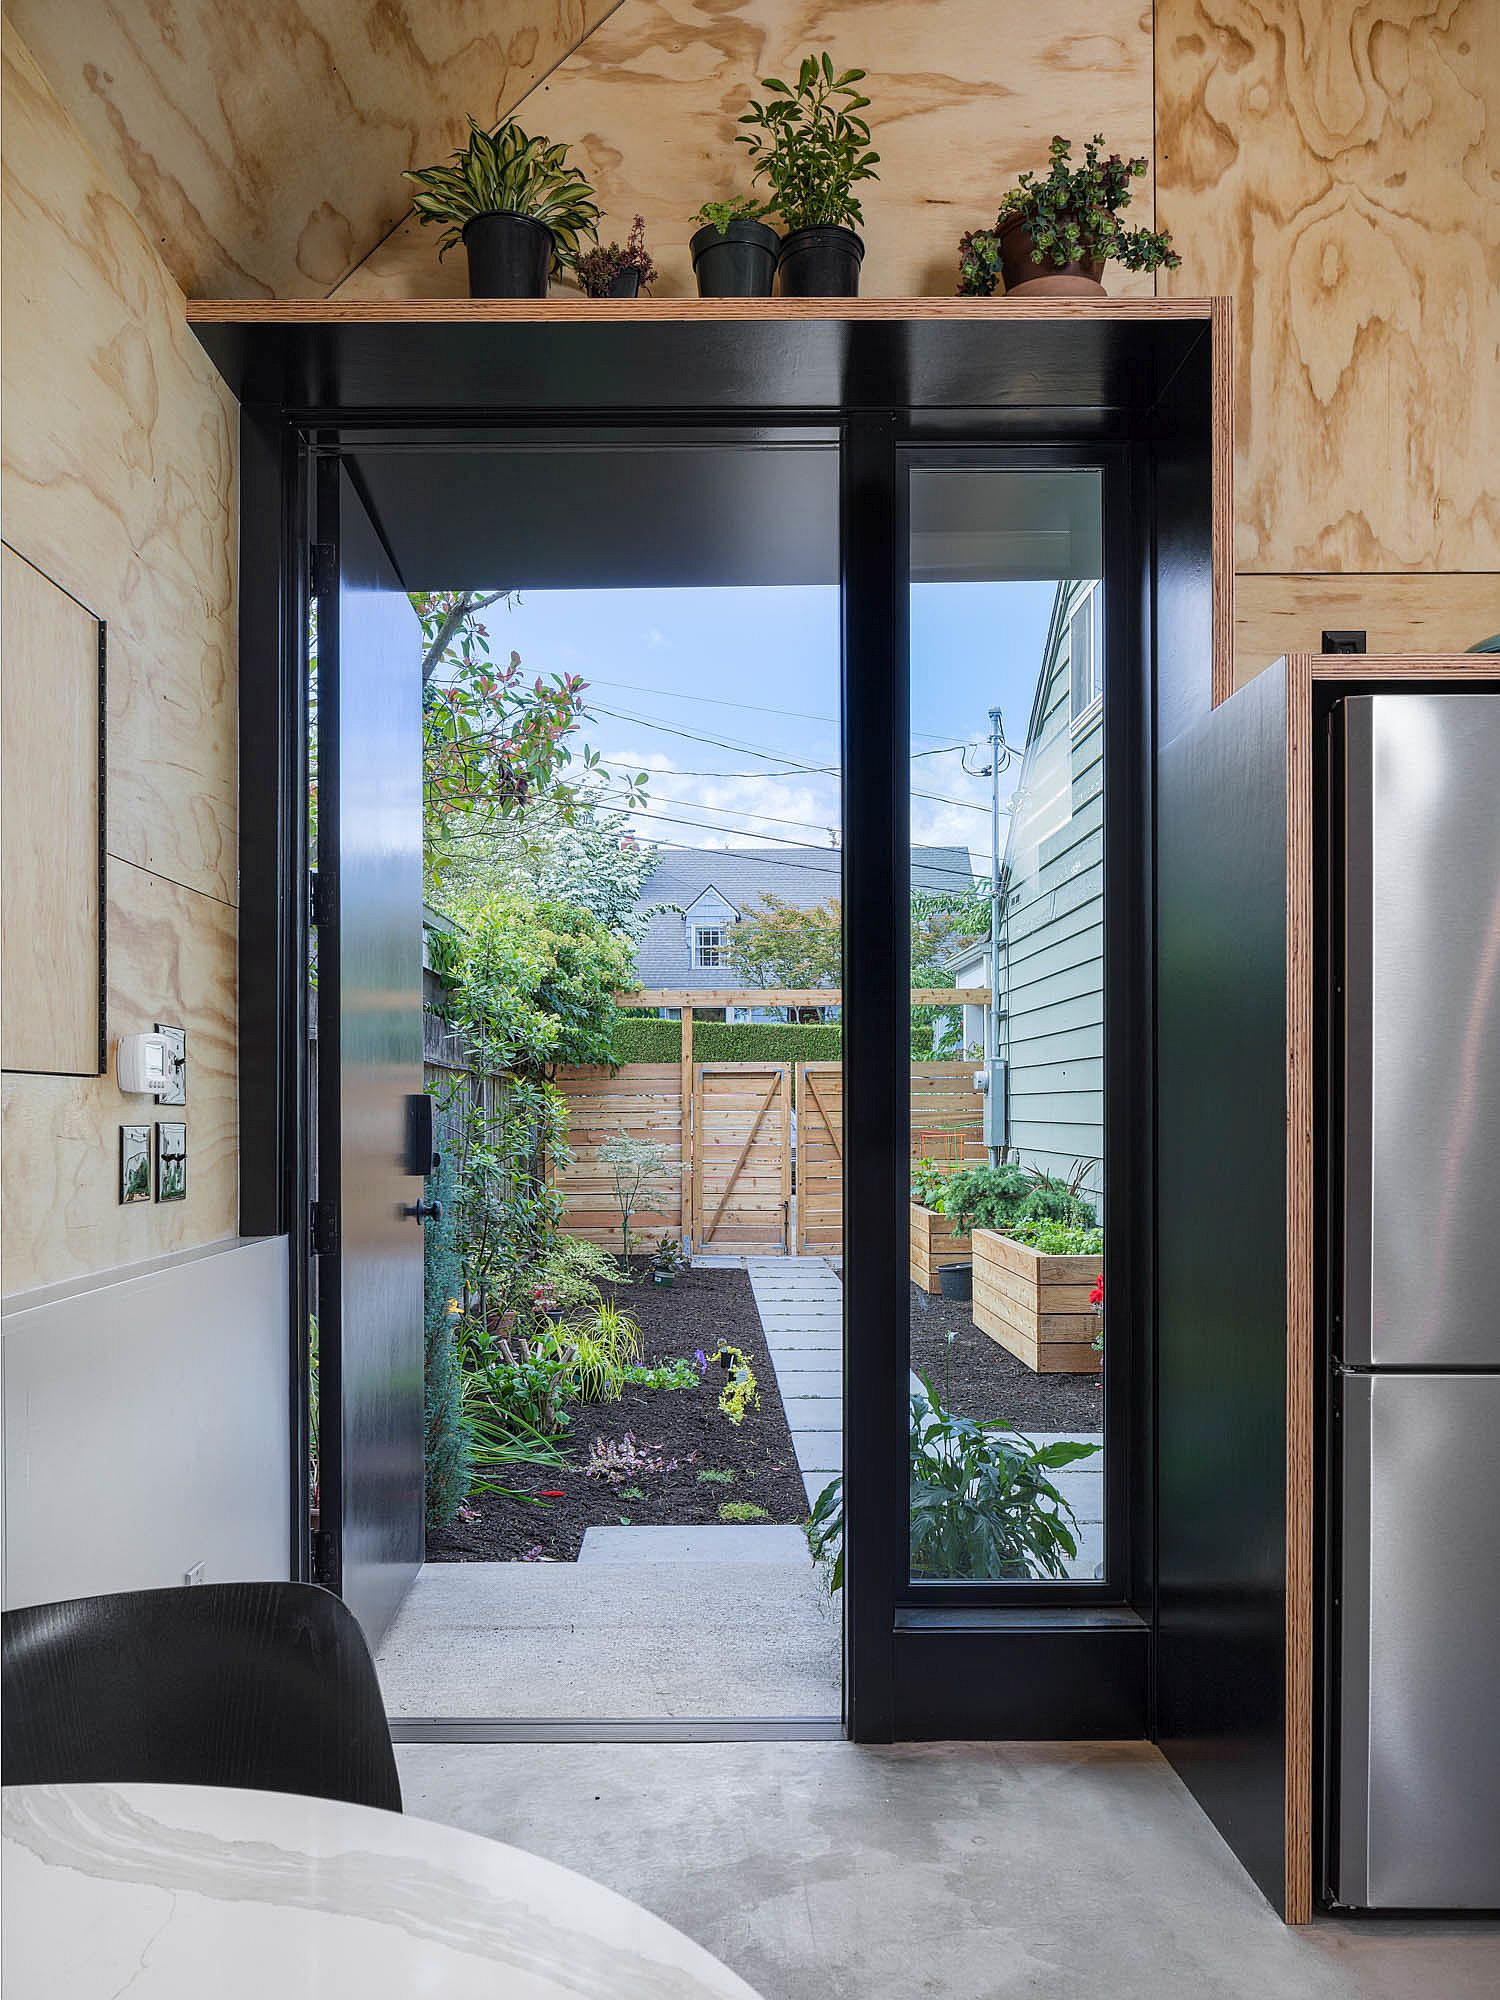 Wood and black interior of the tiny backyard home